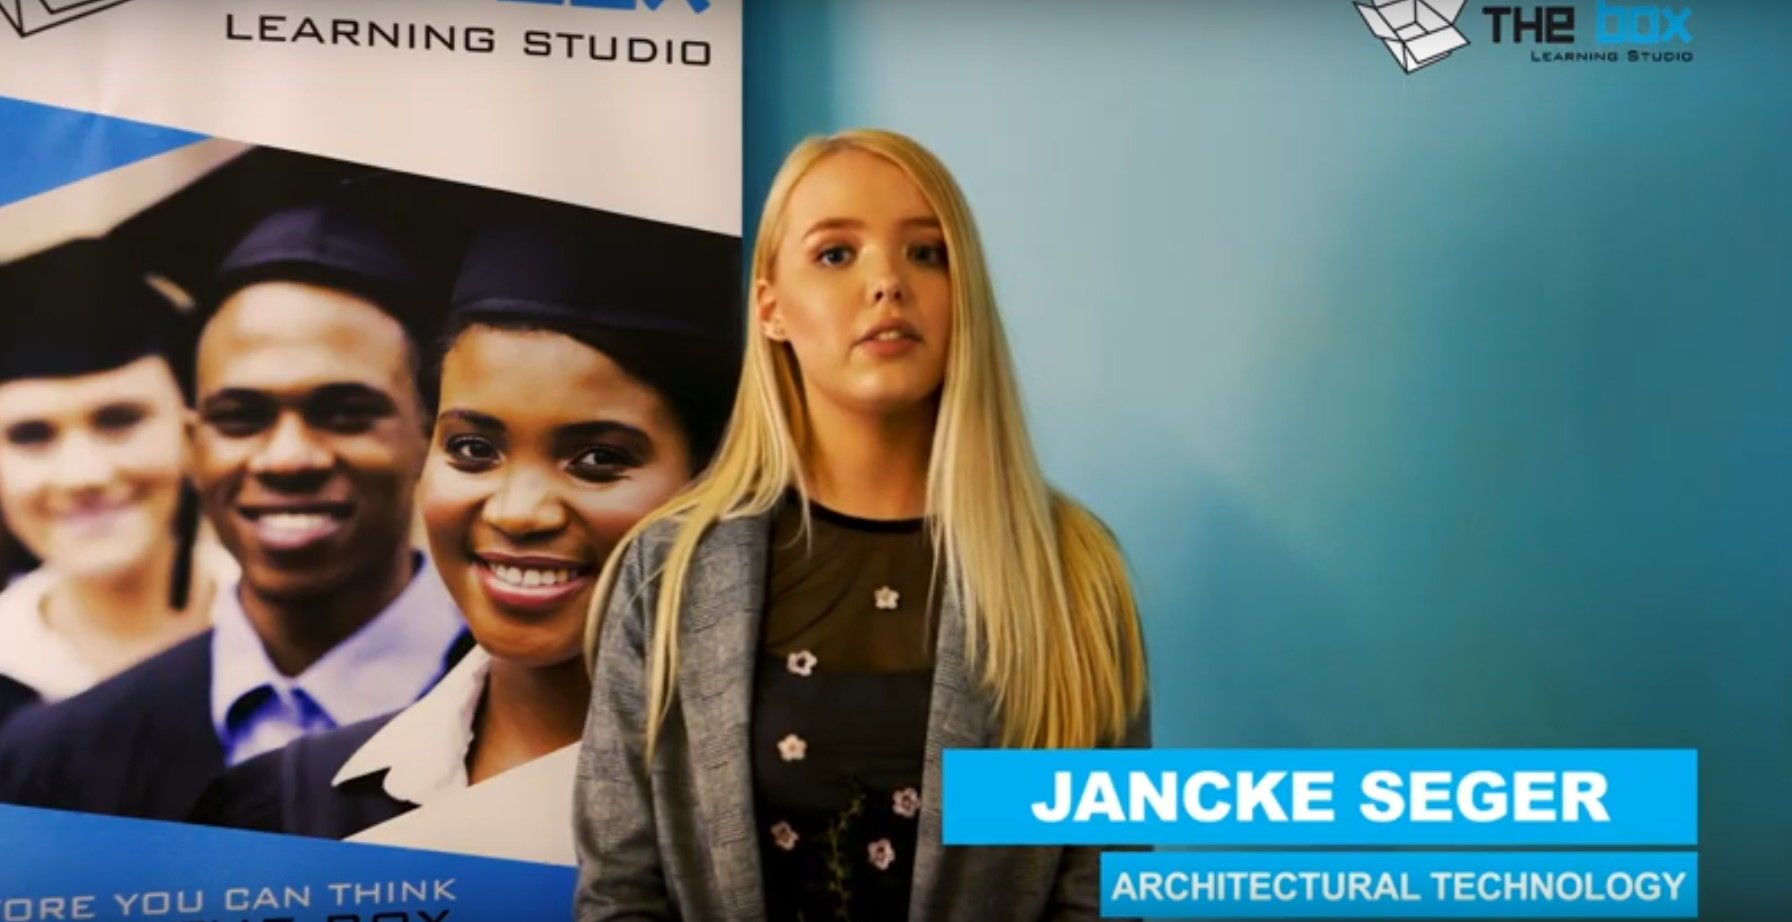 The box learning studio testimonial Jancker